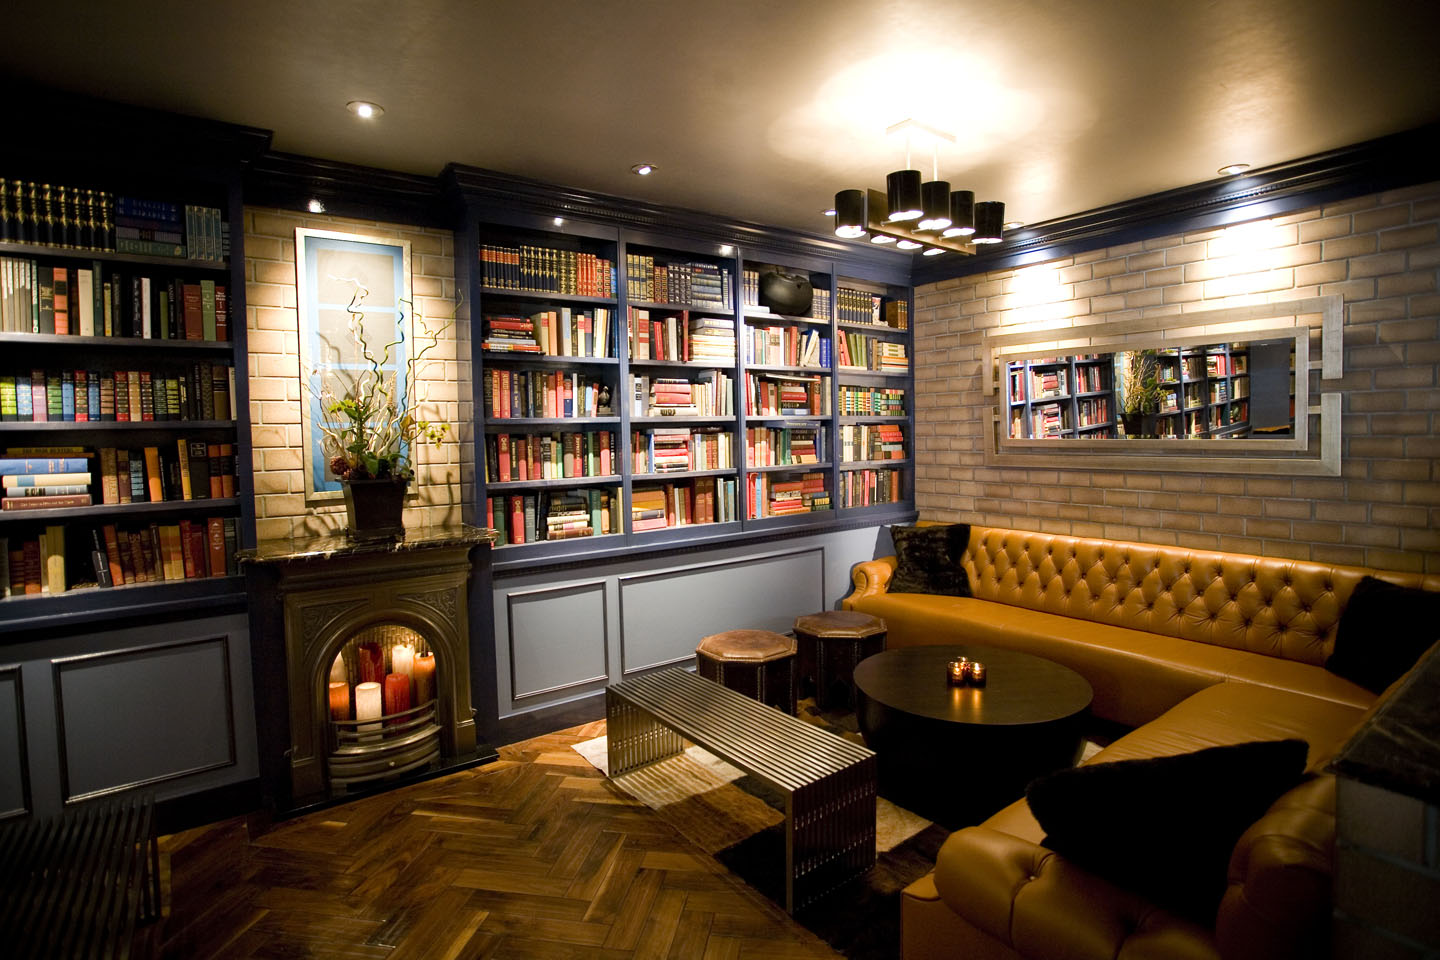 Finished Basement Designs - Library